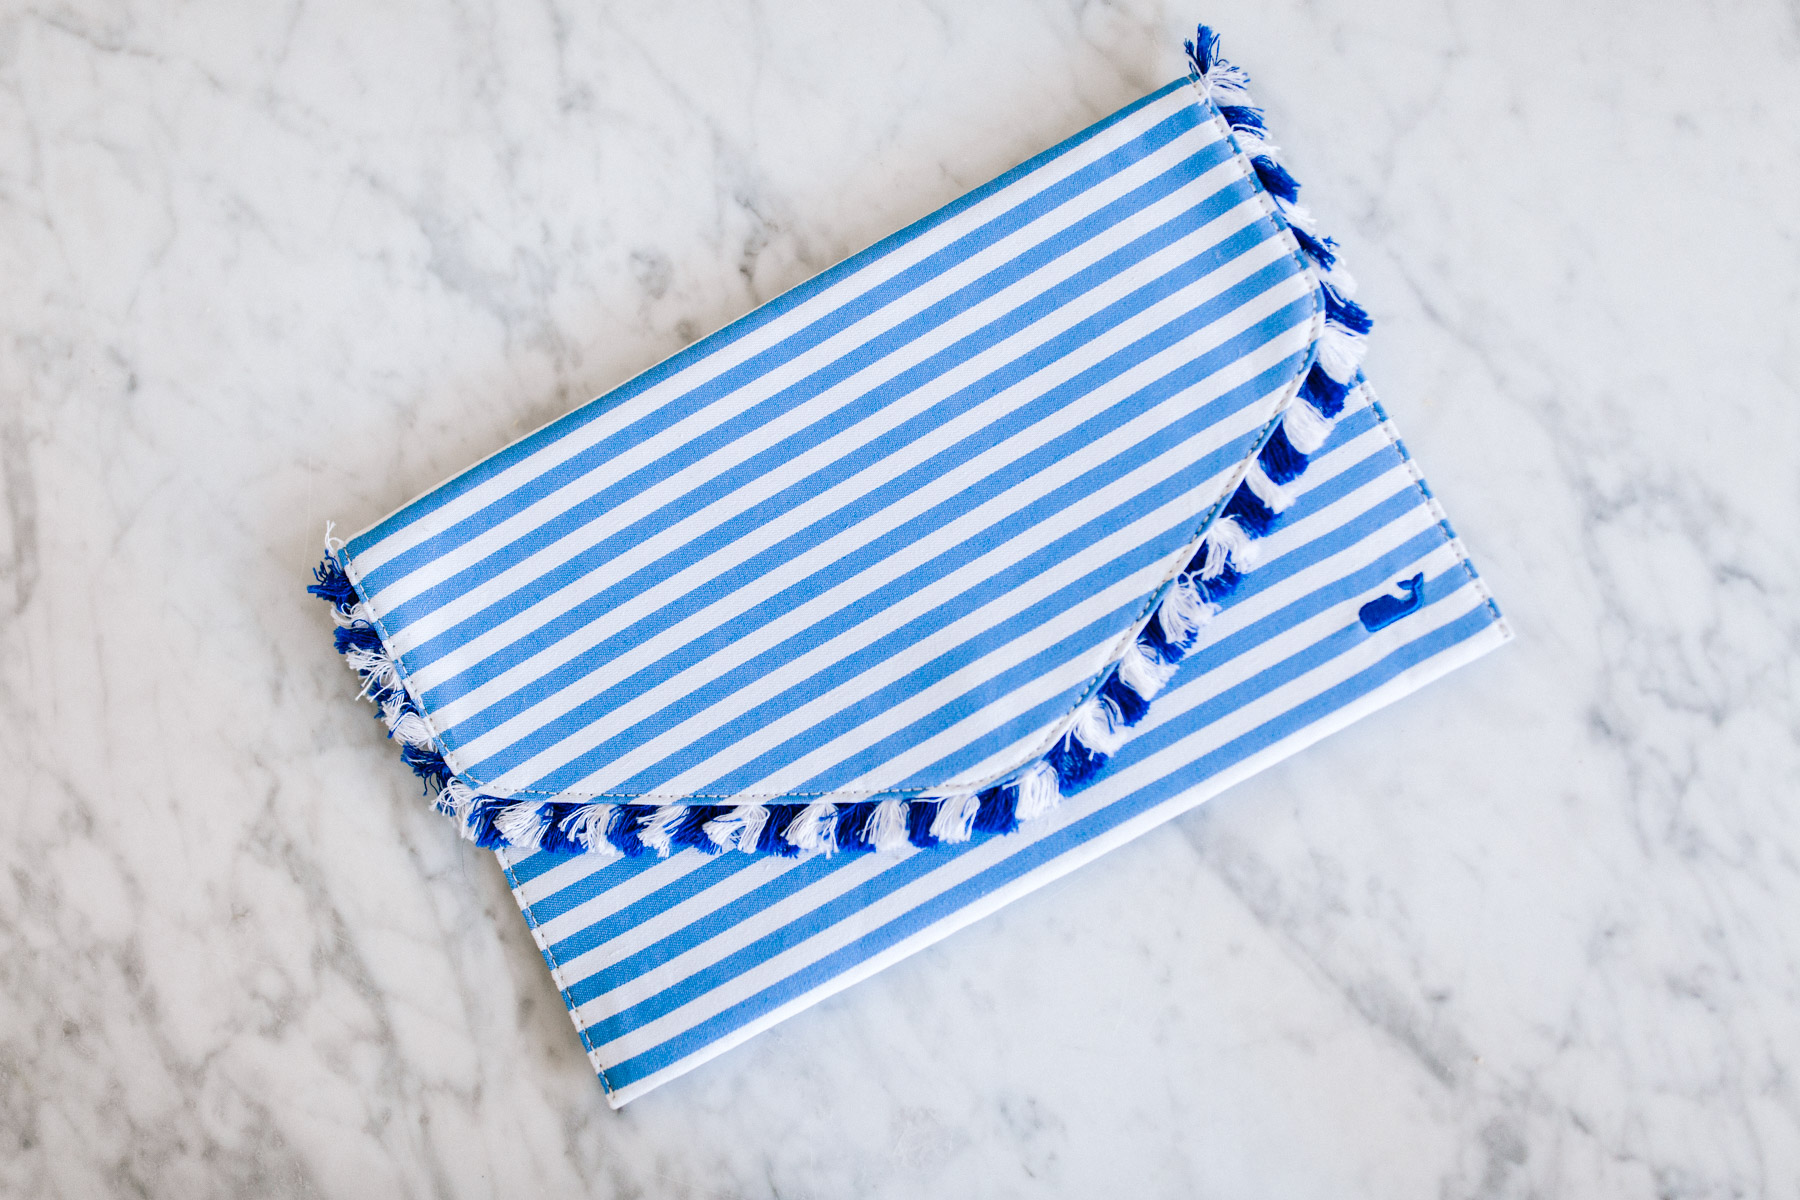 Vineyard Vines Clutch Giveaway